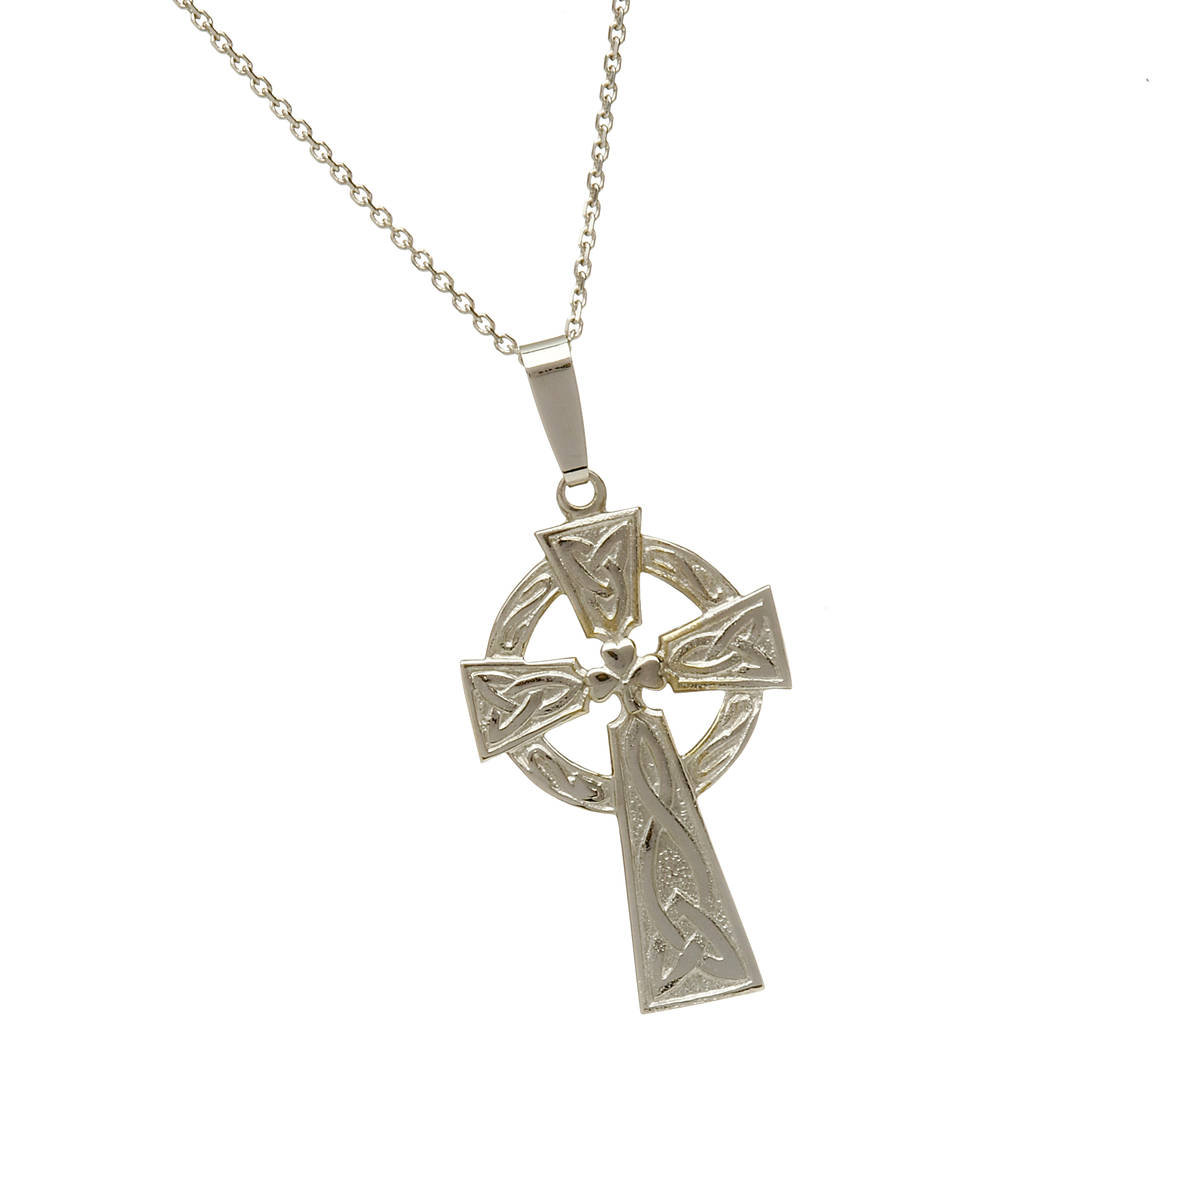 ""\n10 carat white gold Shamrock Celtic Cross pendant with engraved back. This is a very traditional Celtic Cross and is always a firm favourite with customers.It is available on a standard 18""""chain but if a 20"""" chain is required,just ask for it in our comment box on check out.nAlso available in yellow or rose gold.Again ,just let us know your preference.""1200|1200|?|en|2|512da6cca66d0efe8f65ab733f5589cf|False|UNLIKELY|0.31665971875190735